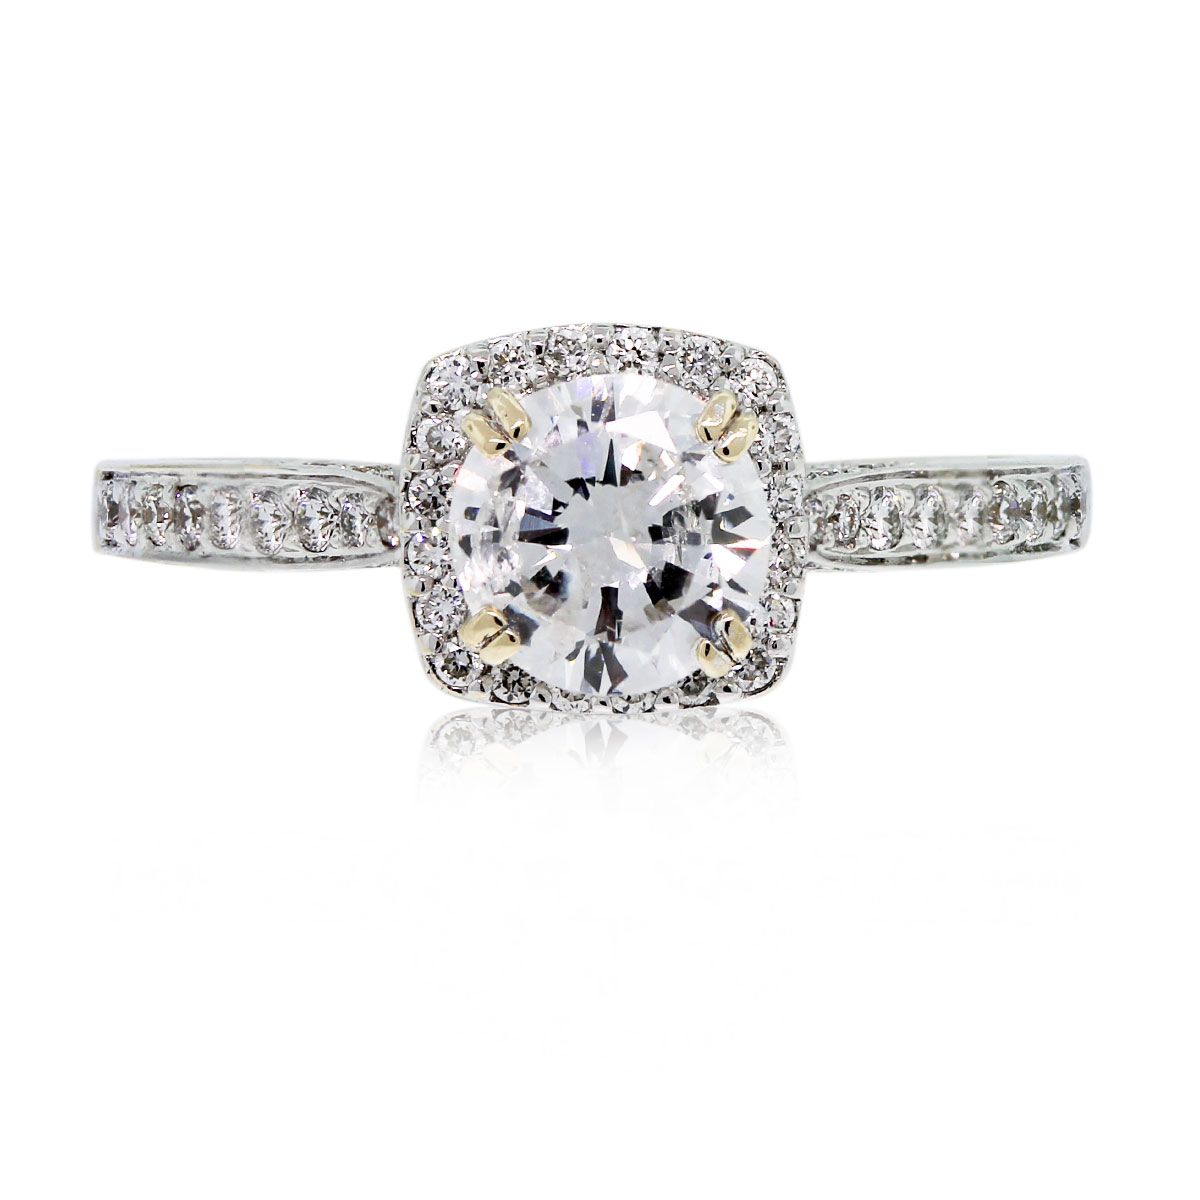 This Platinum Round Brilliant Diamond Halo Engagement Ring is stunning!